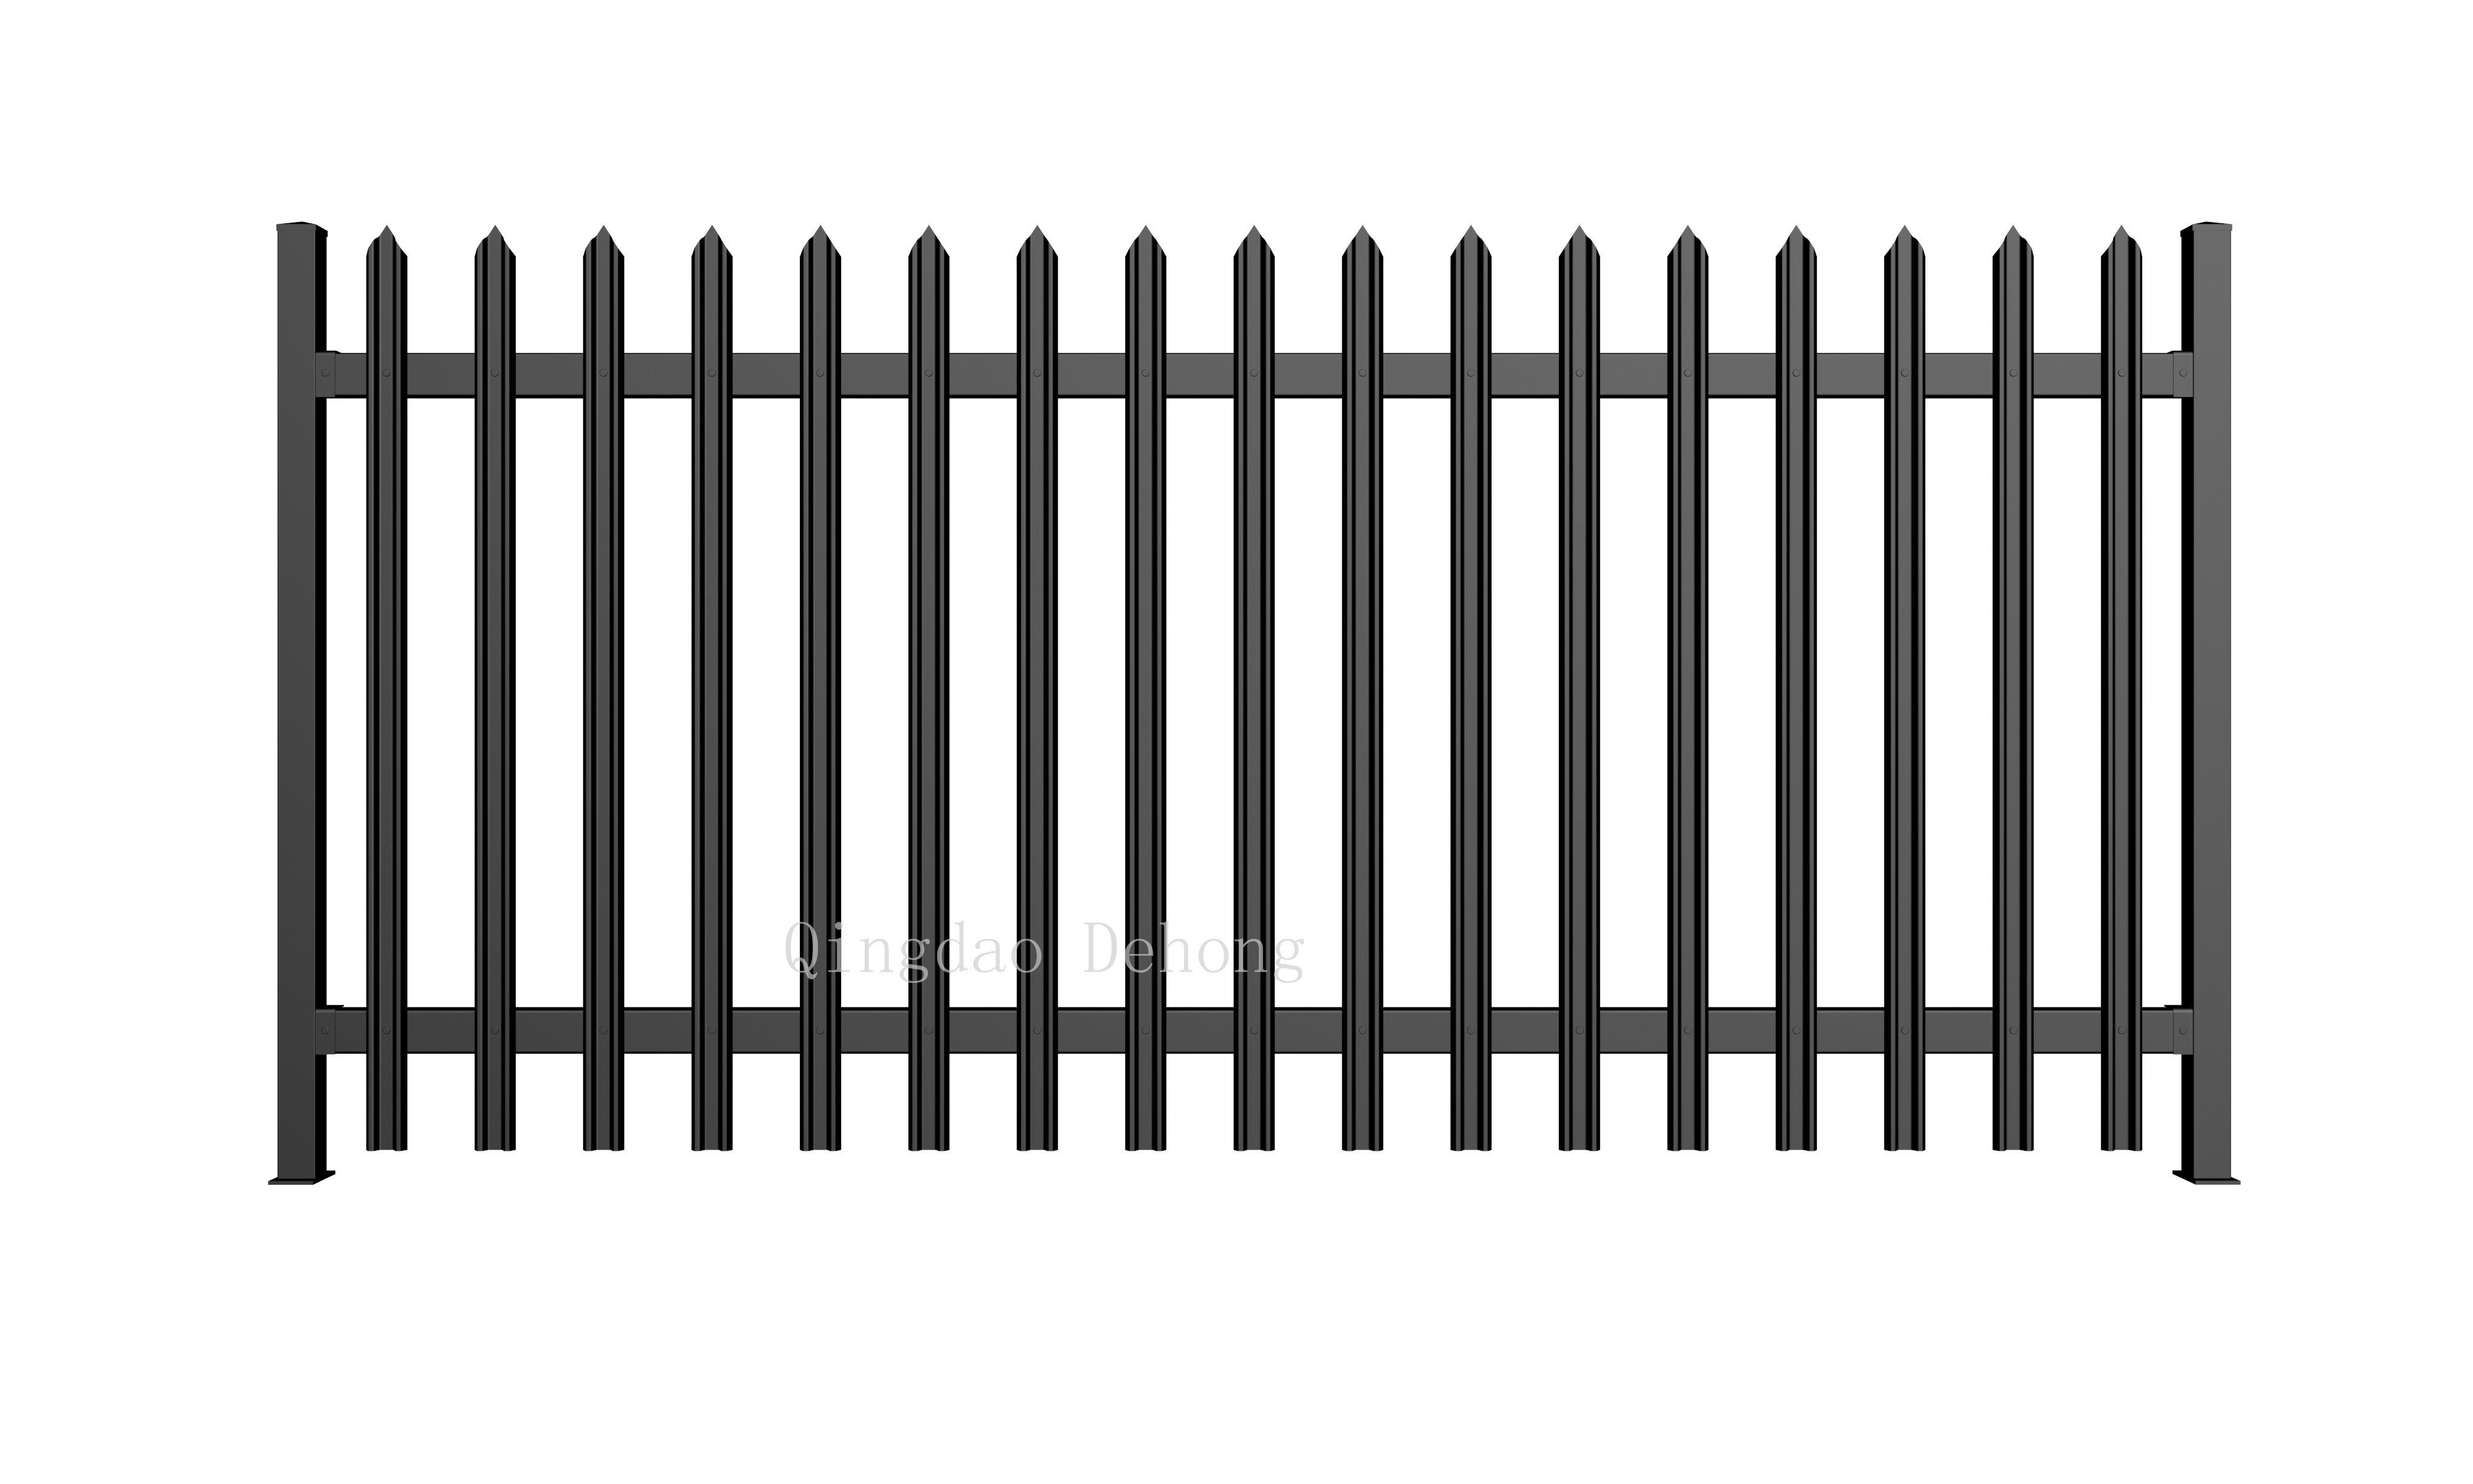 Picture of: China High Quality Wrought Iron Fences China Ornamental Farm Security Fences Hot Selling Metal Fence